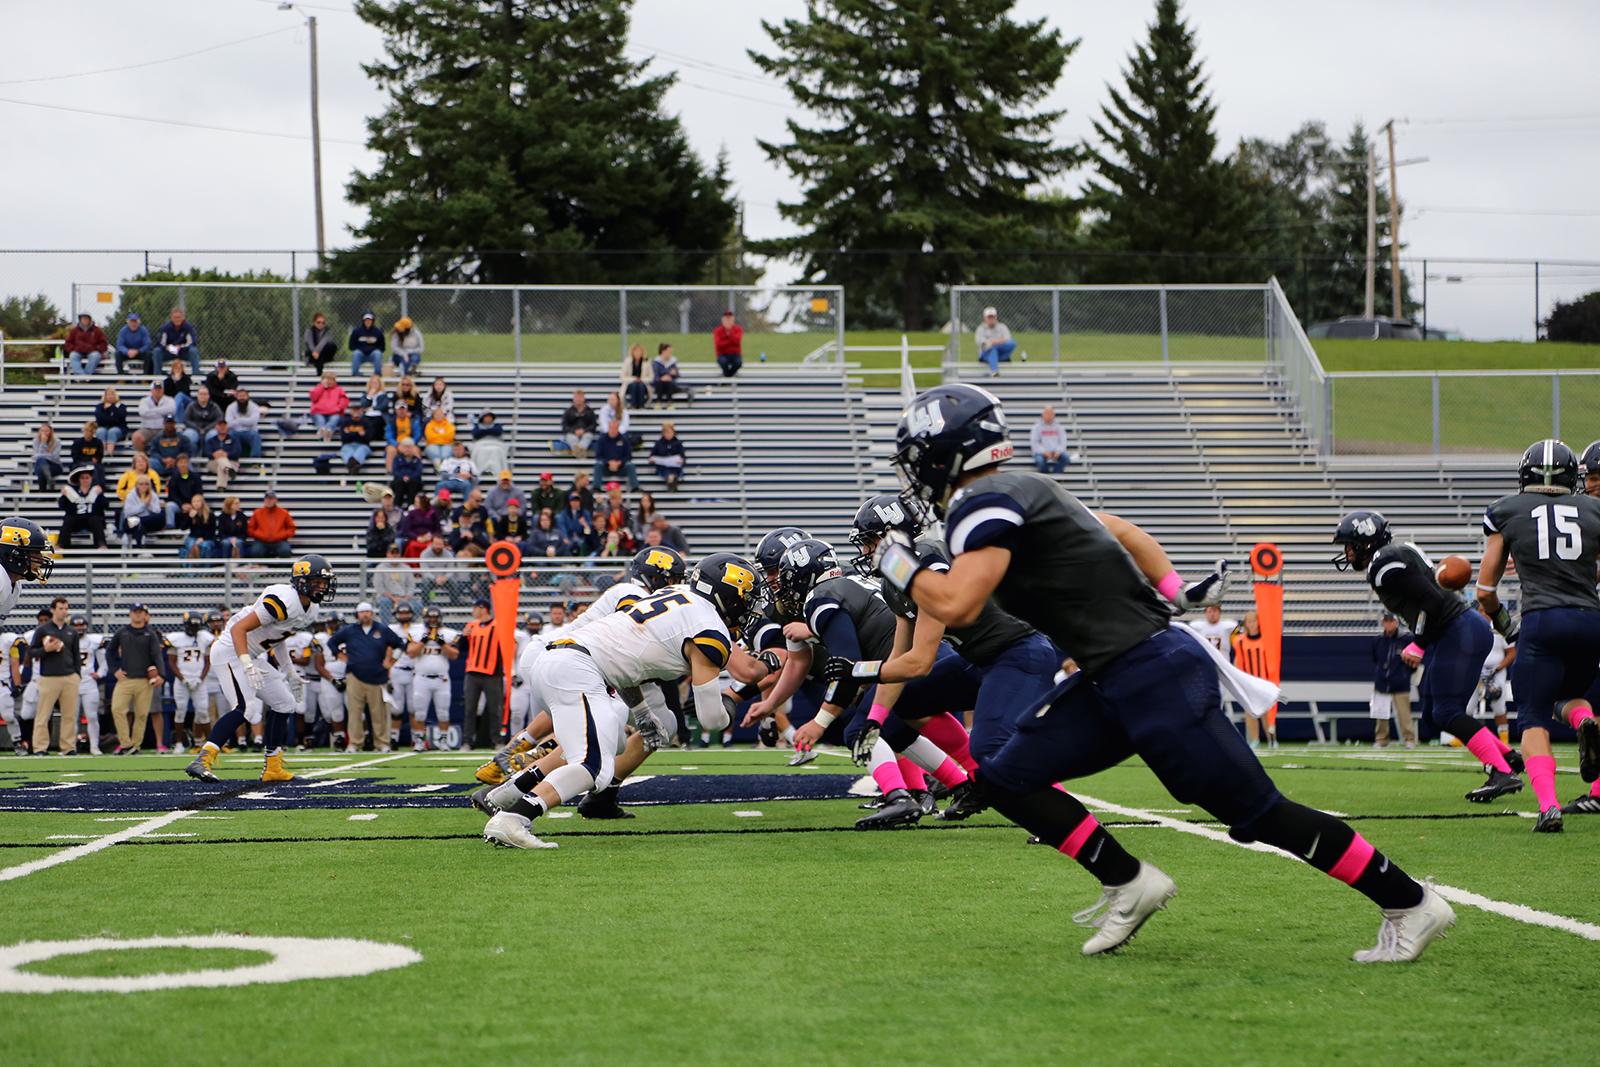 Lawrence football took down Beloit for the team's second win this season. Photo by Victor Nguyen